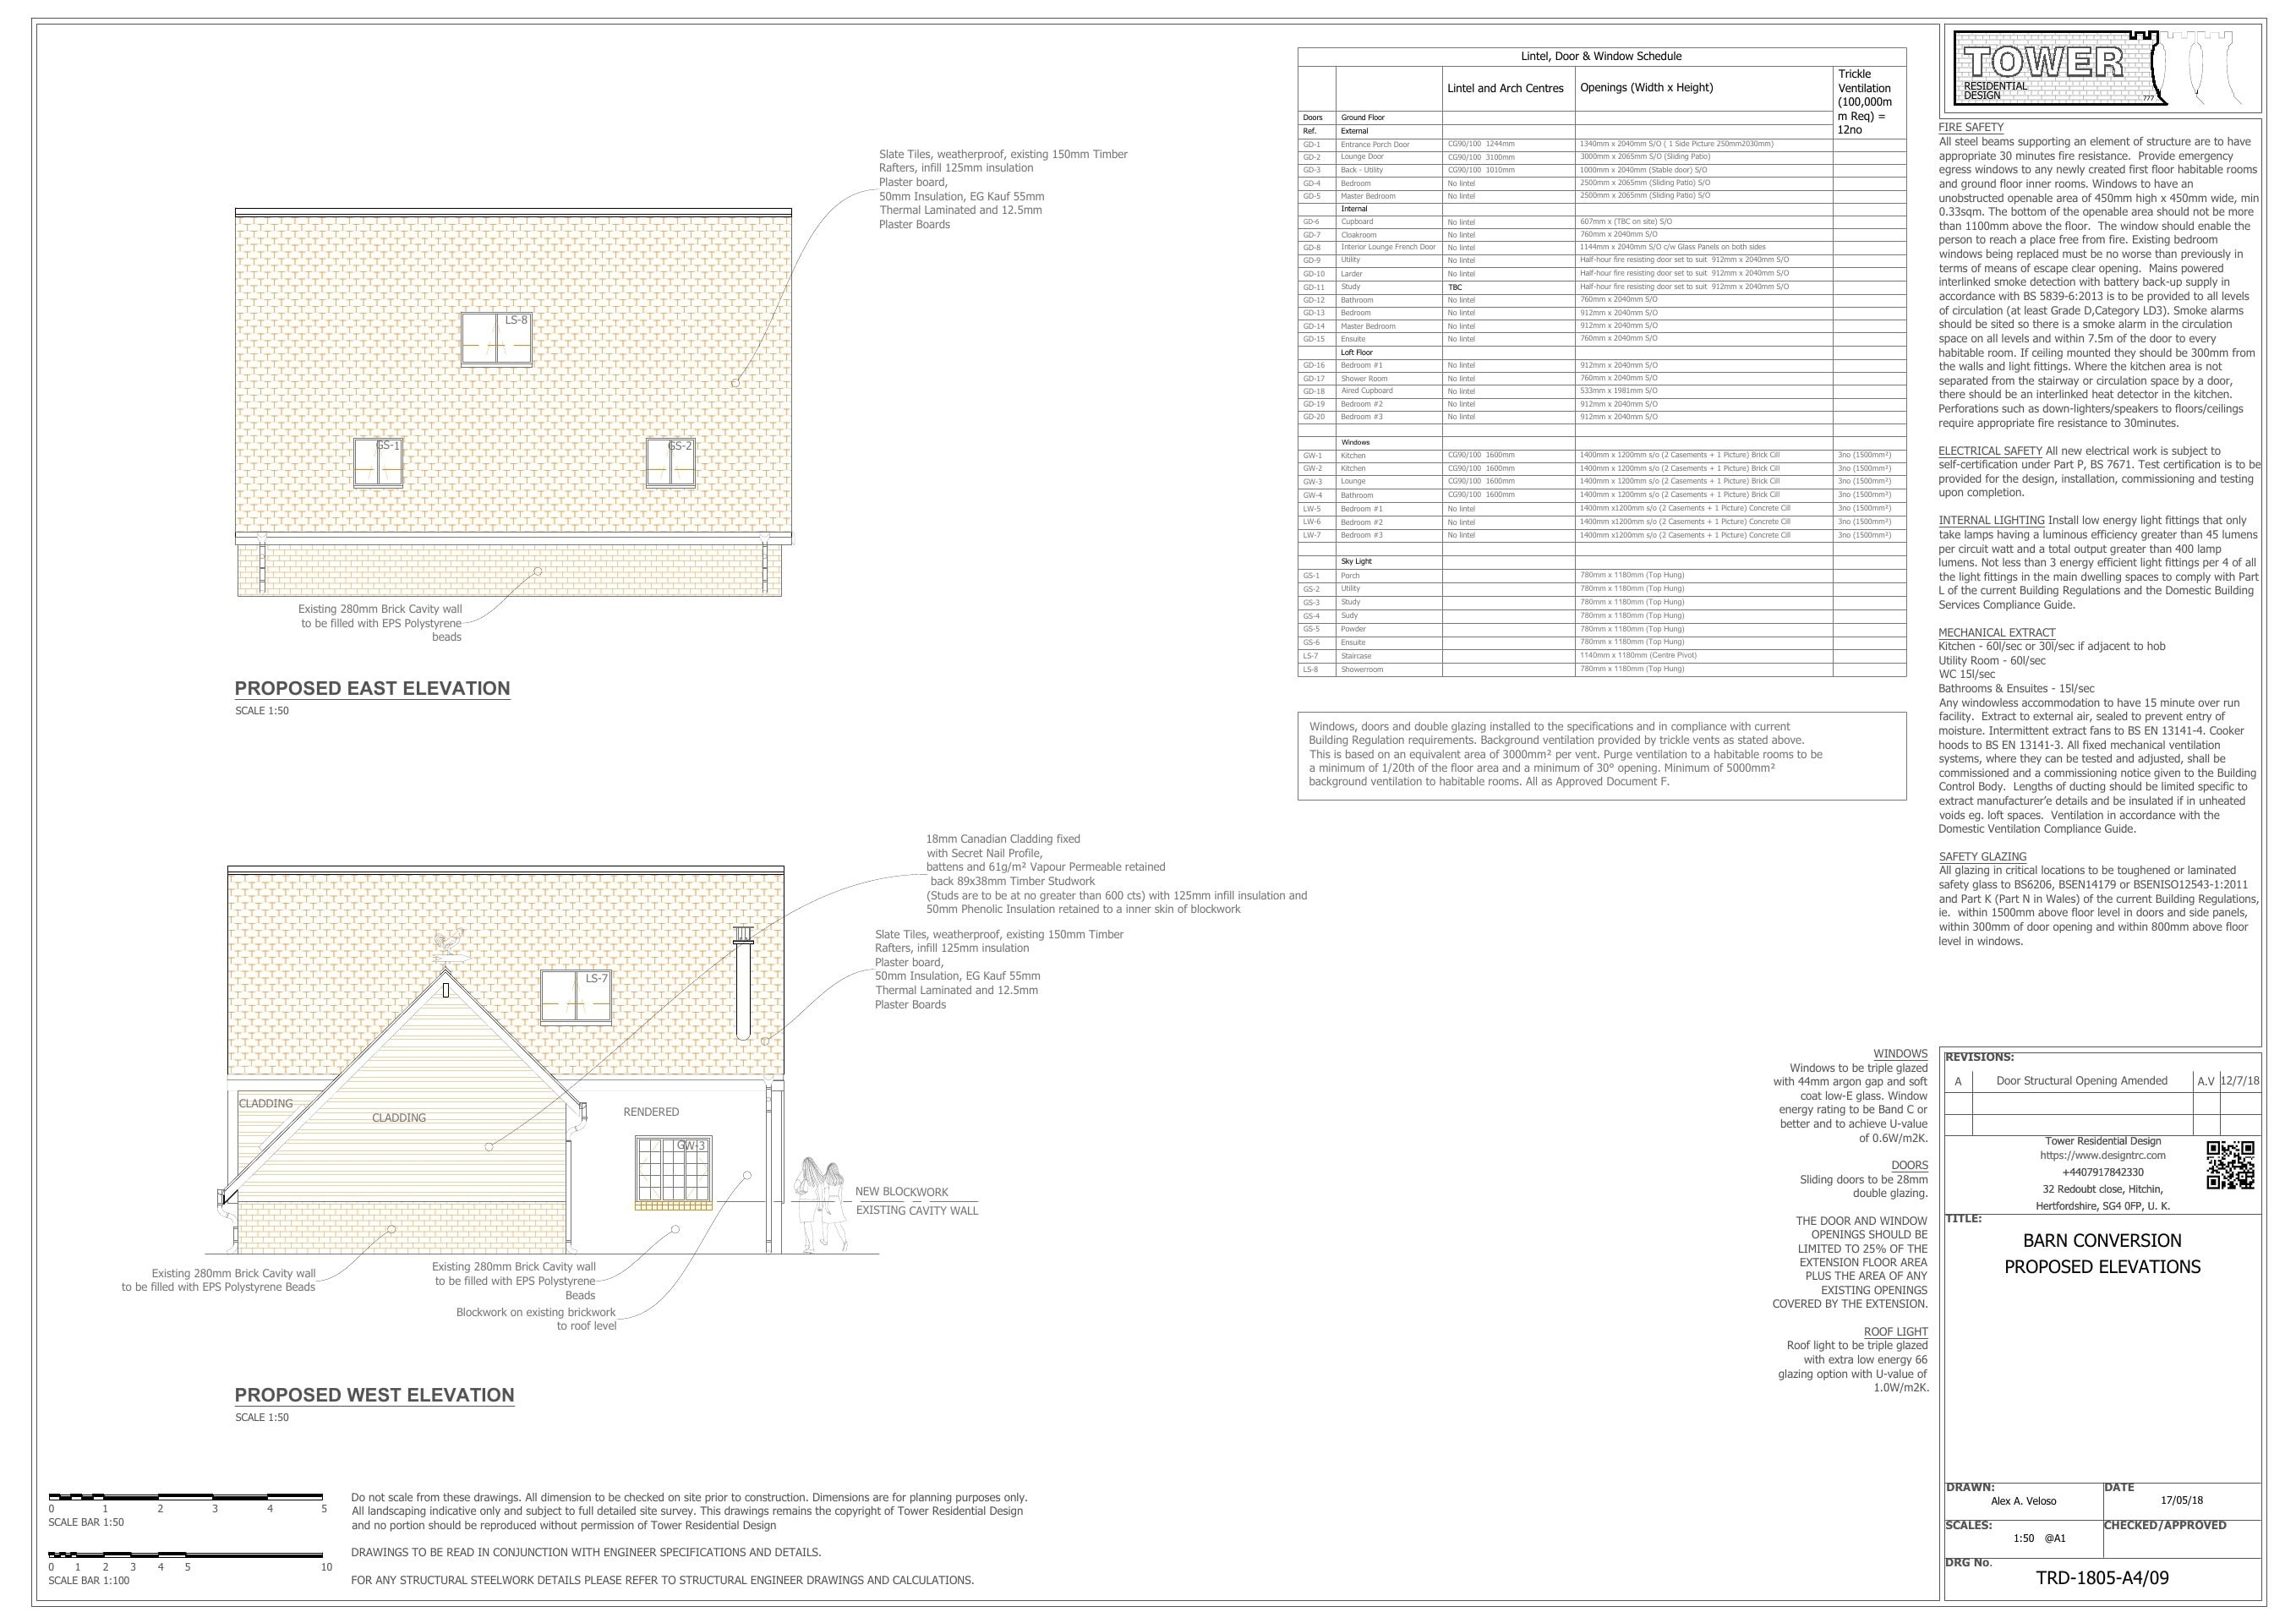 Barn Conversion - Proposed Side Elevations